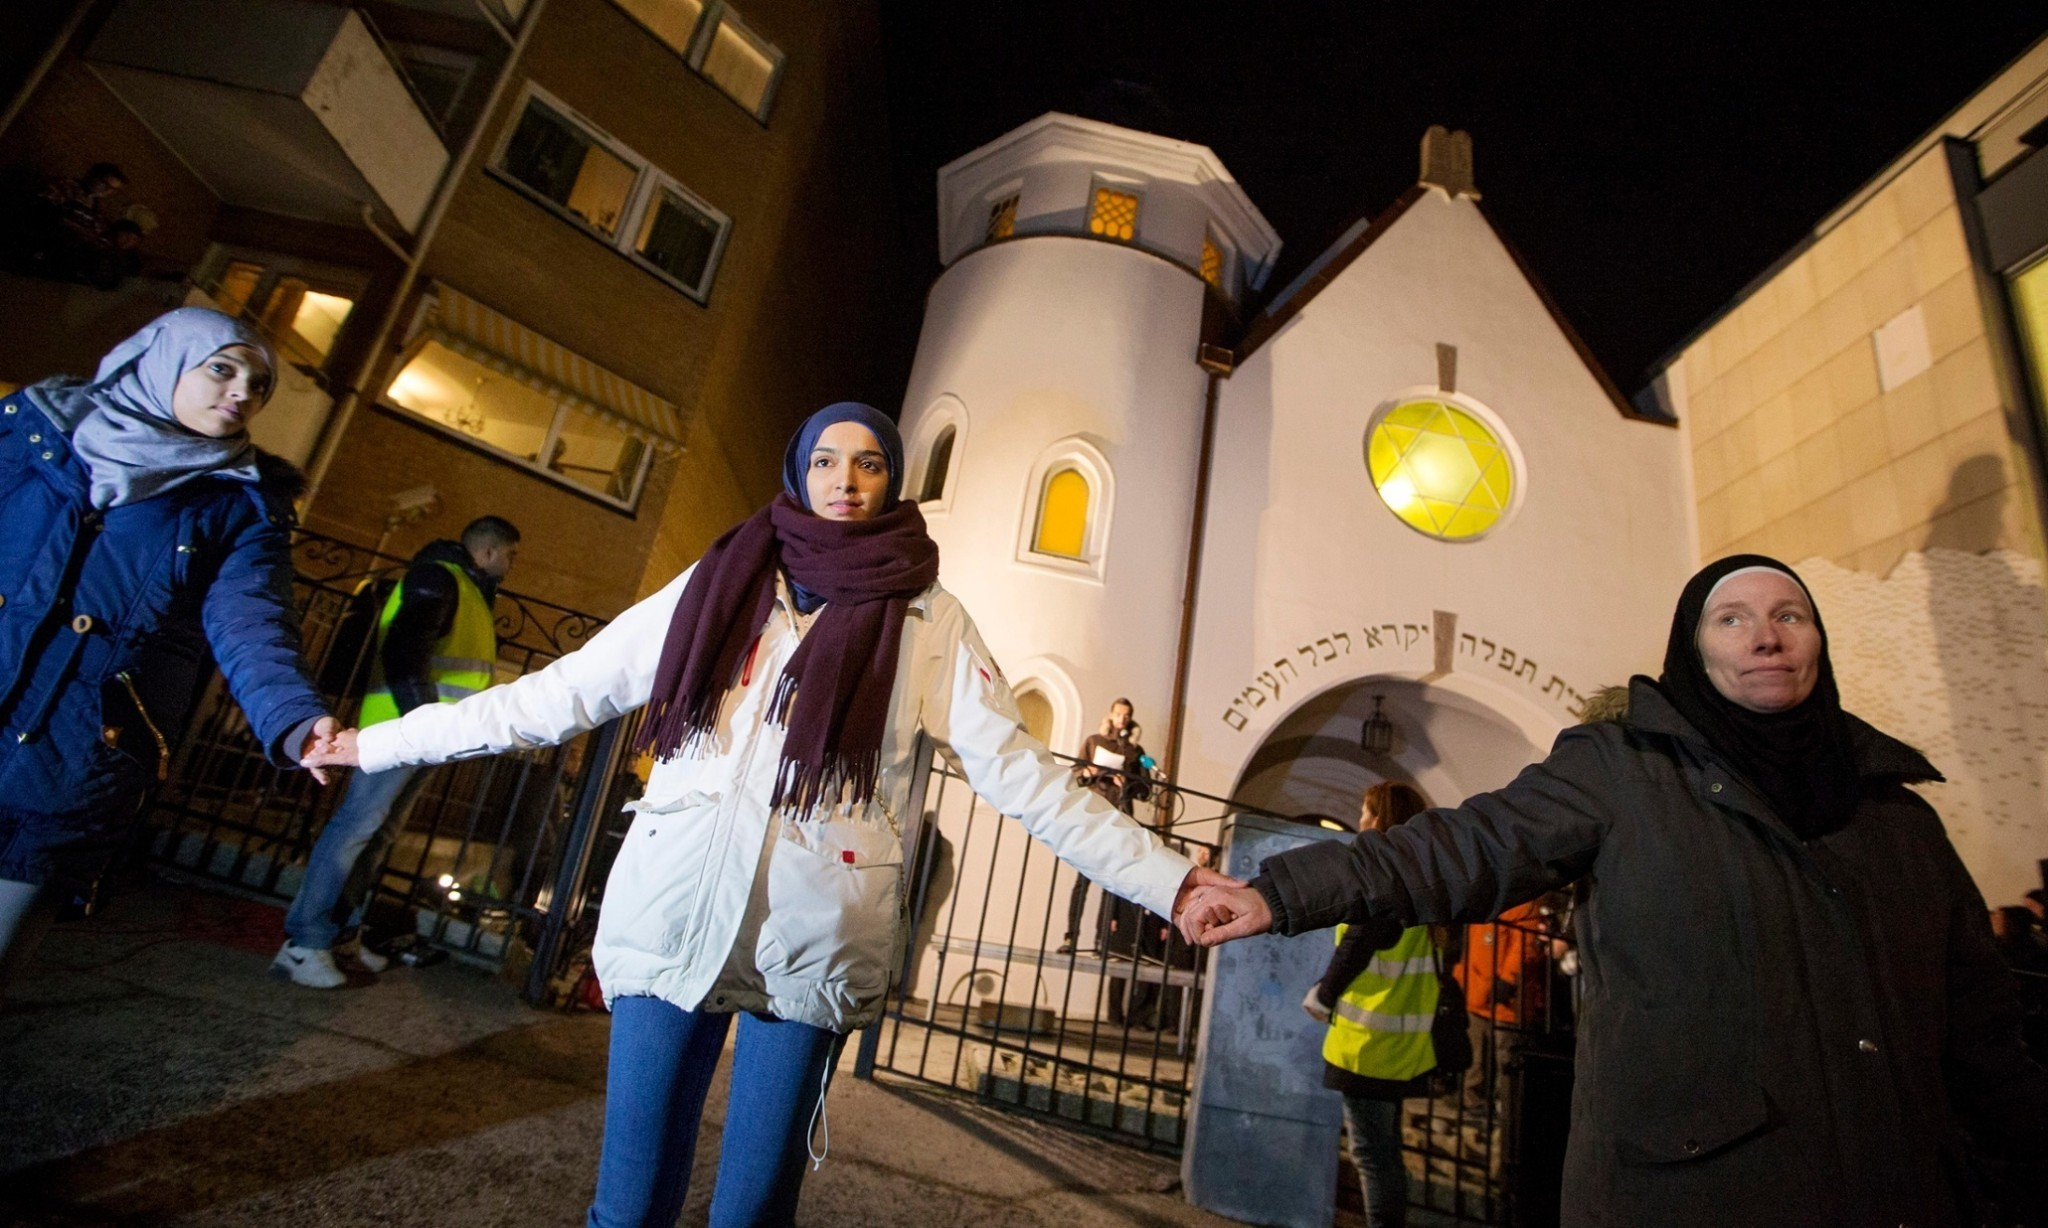 Norway's Muslims and Jews link up to denounce extremist violence